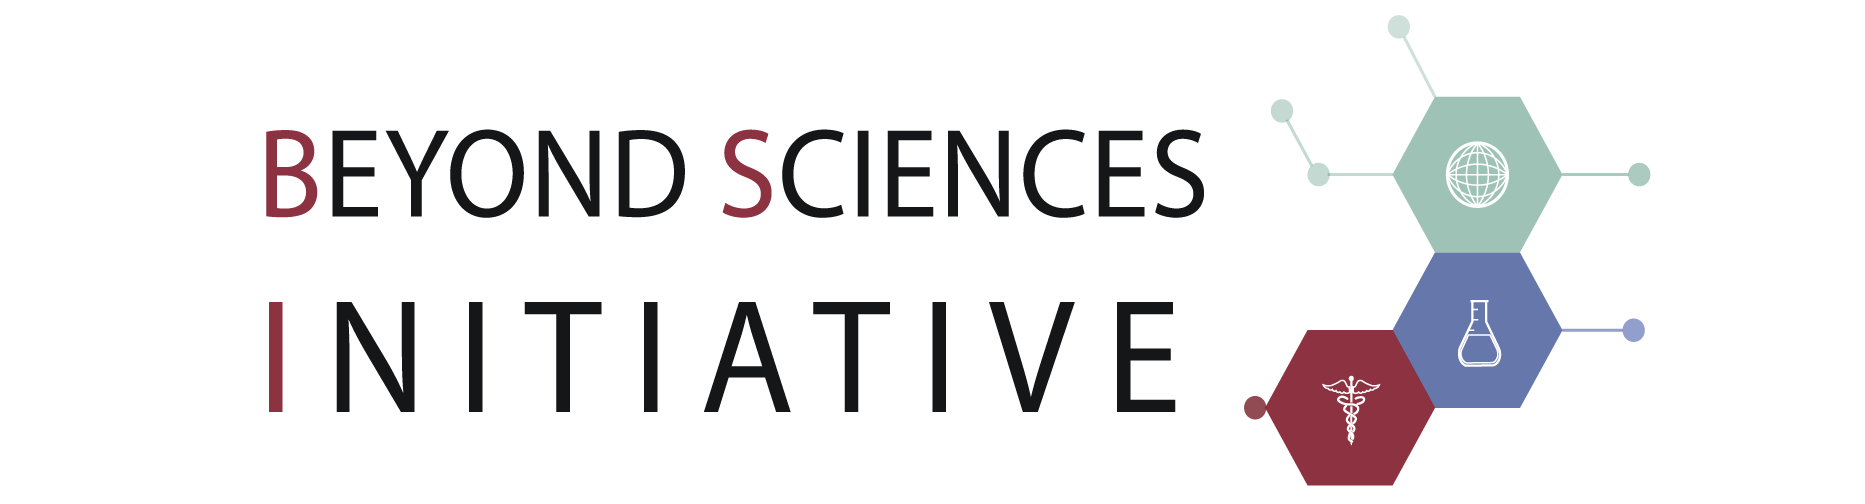 Beyond Sciences Logo